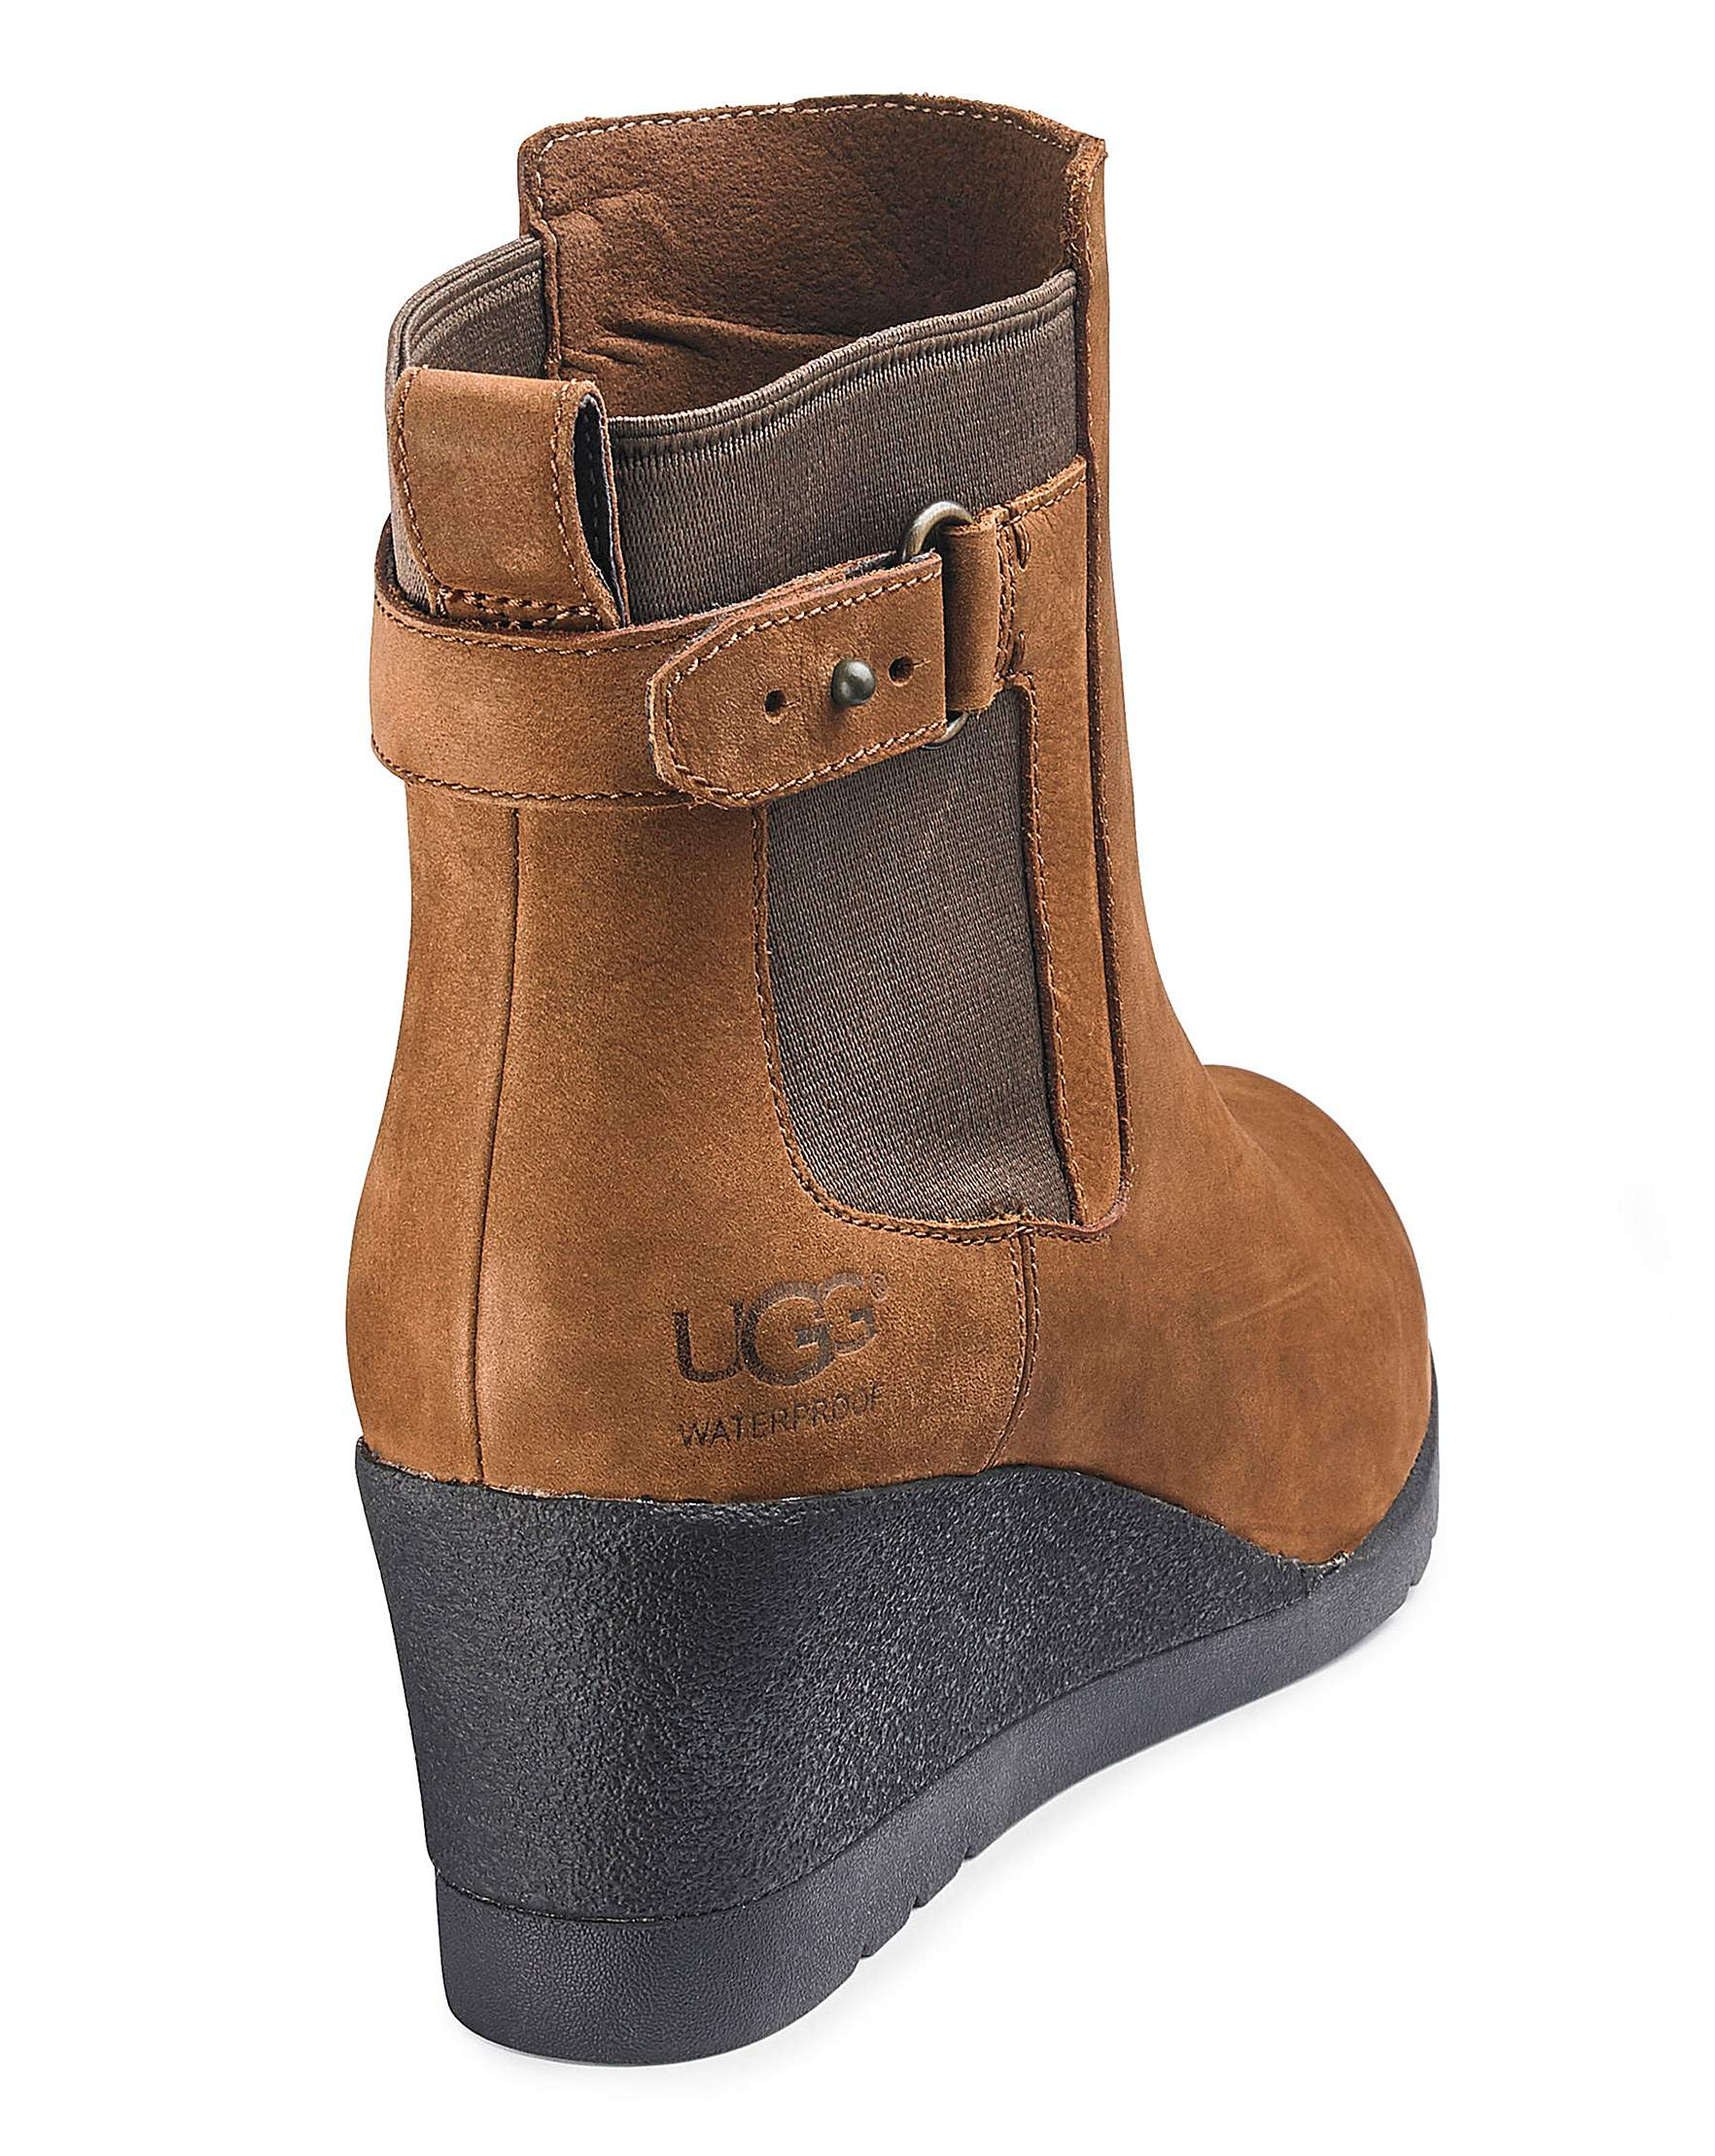 c6683d524e2 Ugg Indra Wedge Boots